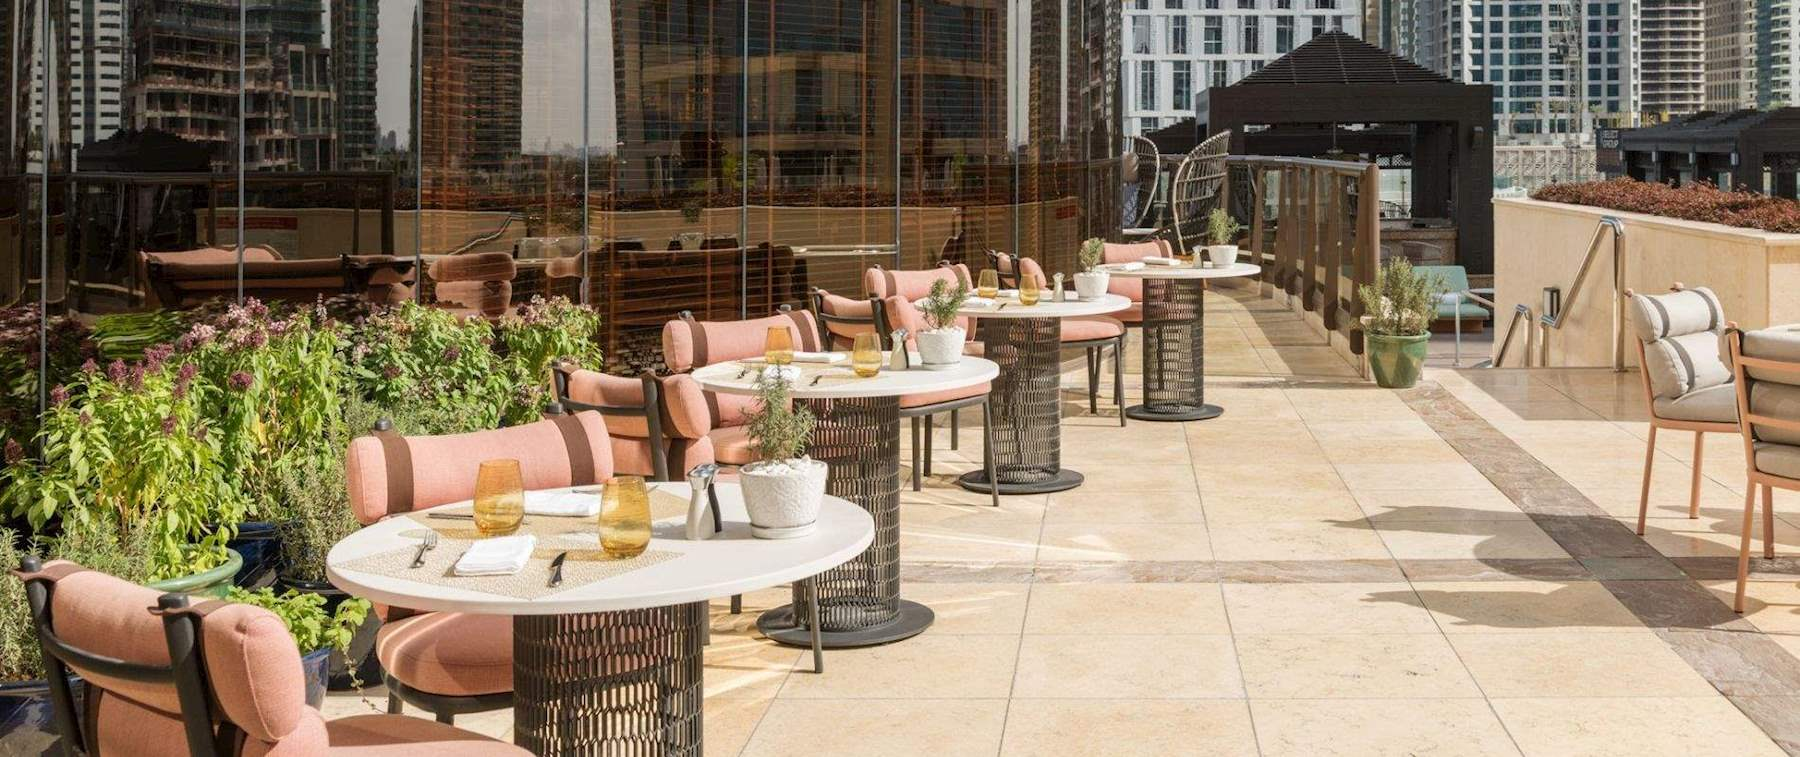 Outdoor Patio Area at Bellavista, Dubai